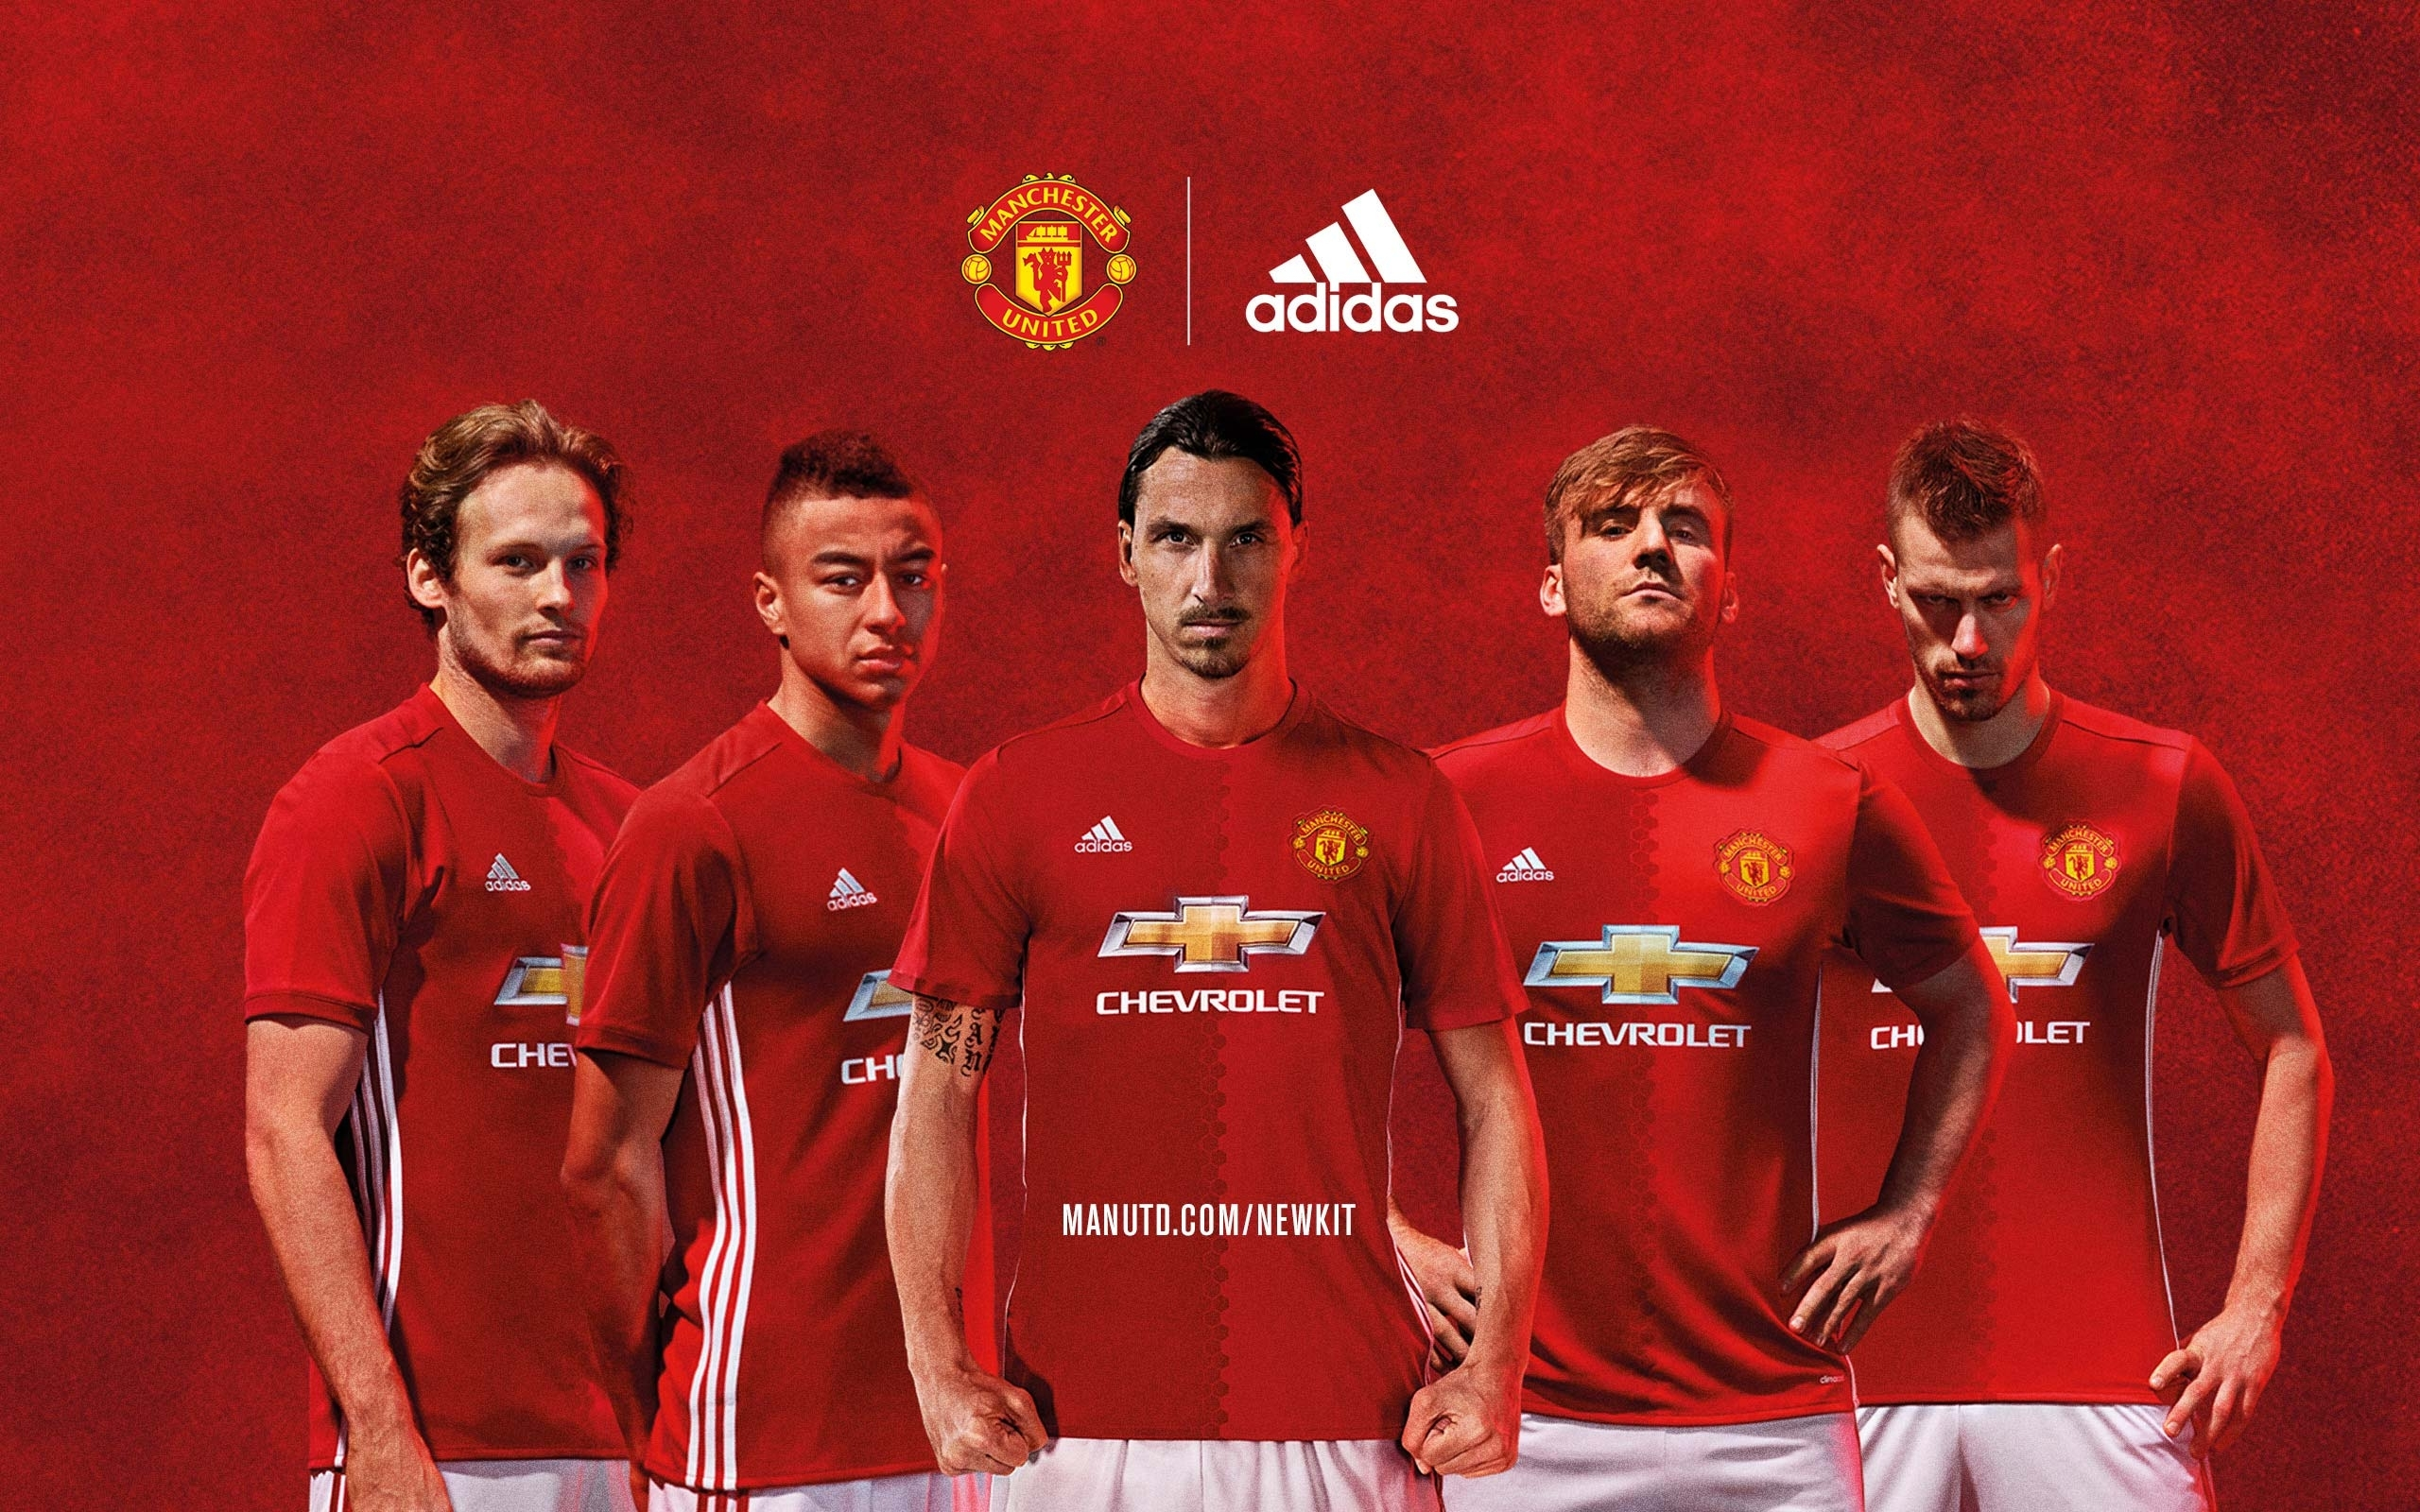 New Manchester United Wallpapers Hd 2017 Great Foofball Club 2560x1600